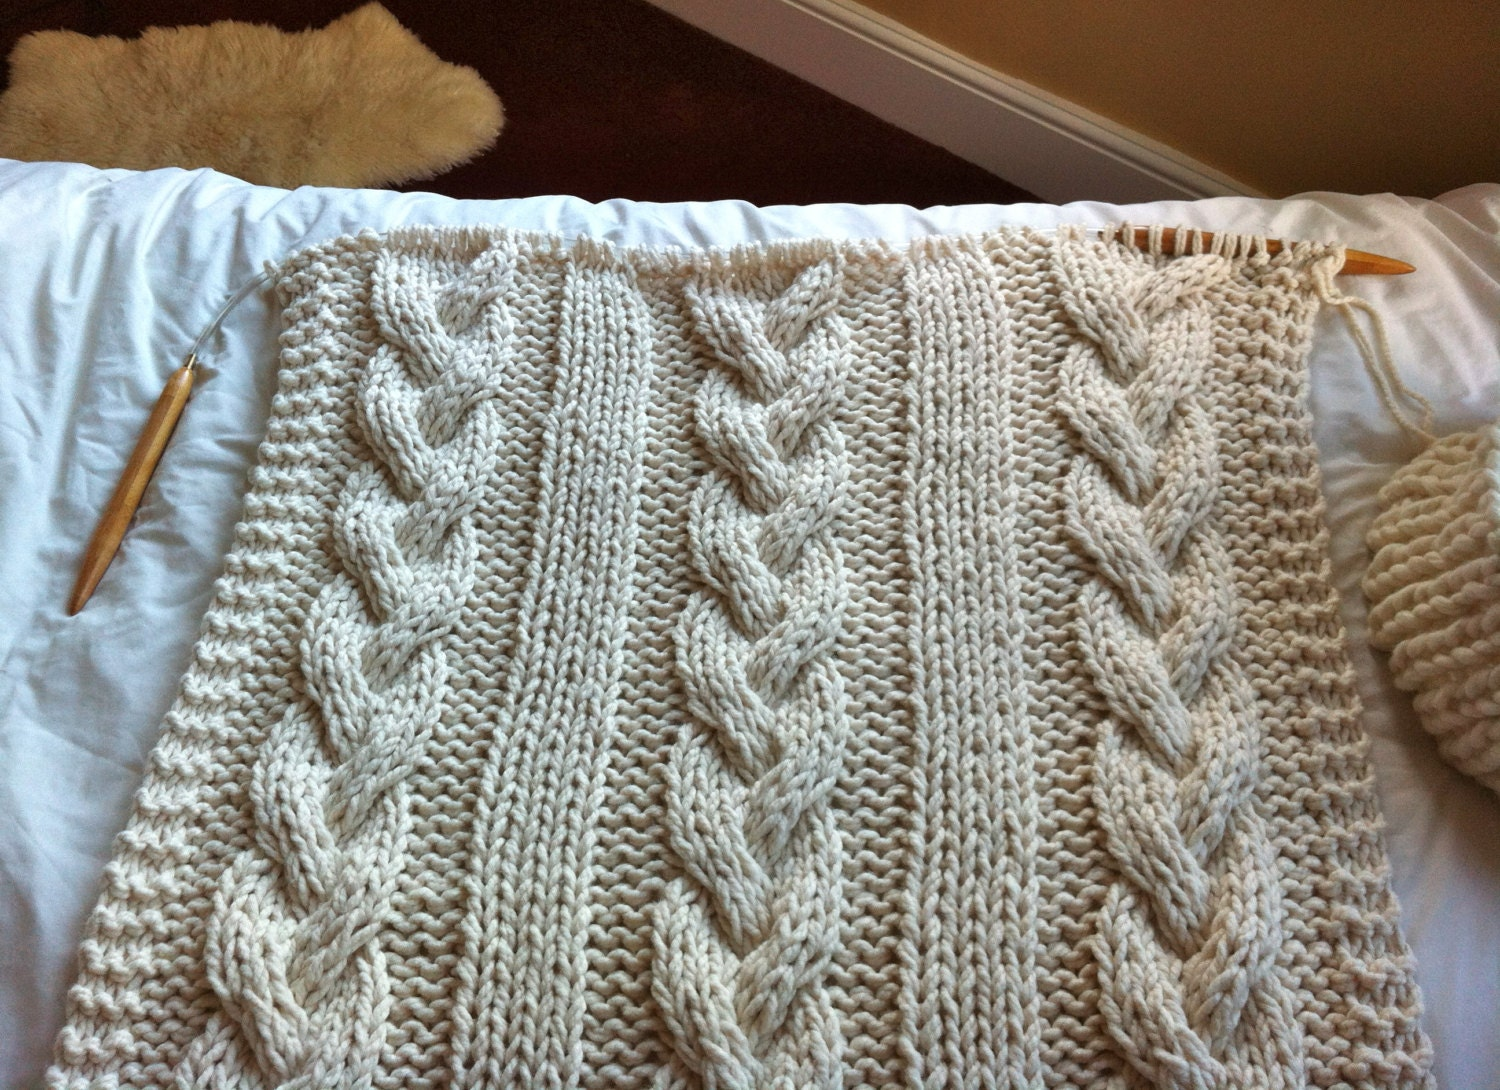 Giant Knit Blanket Pattern : Giant Cable Knit Blanket or Throw by Knittingrev on Etsy